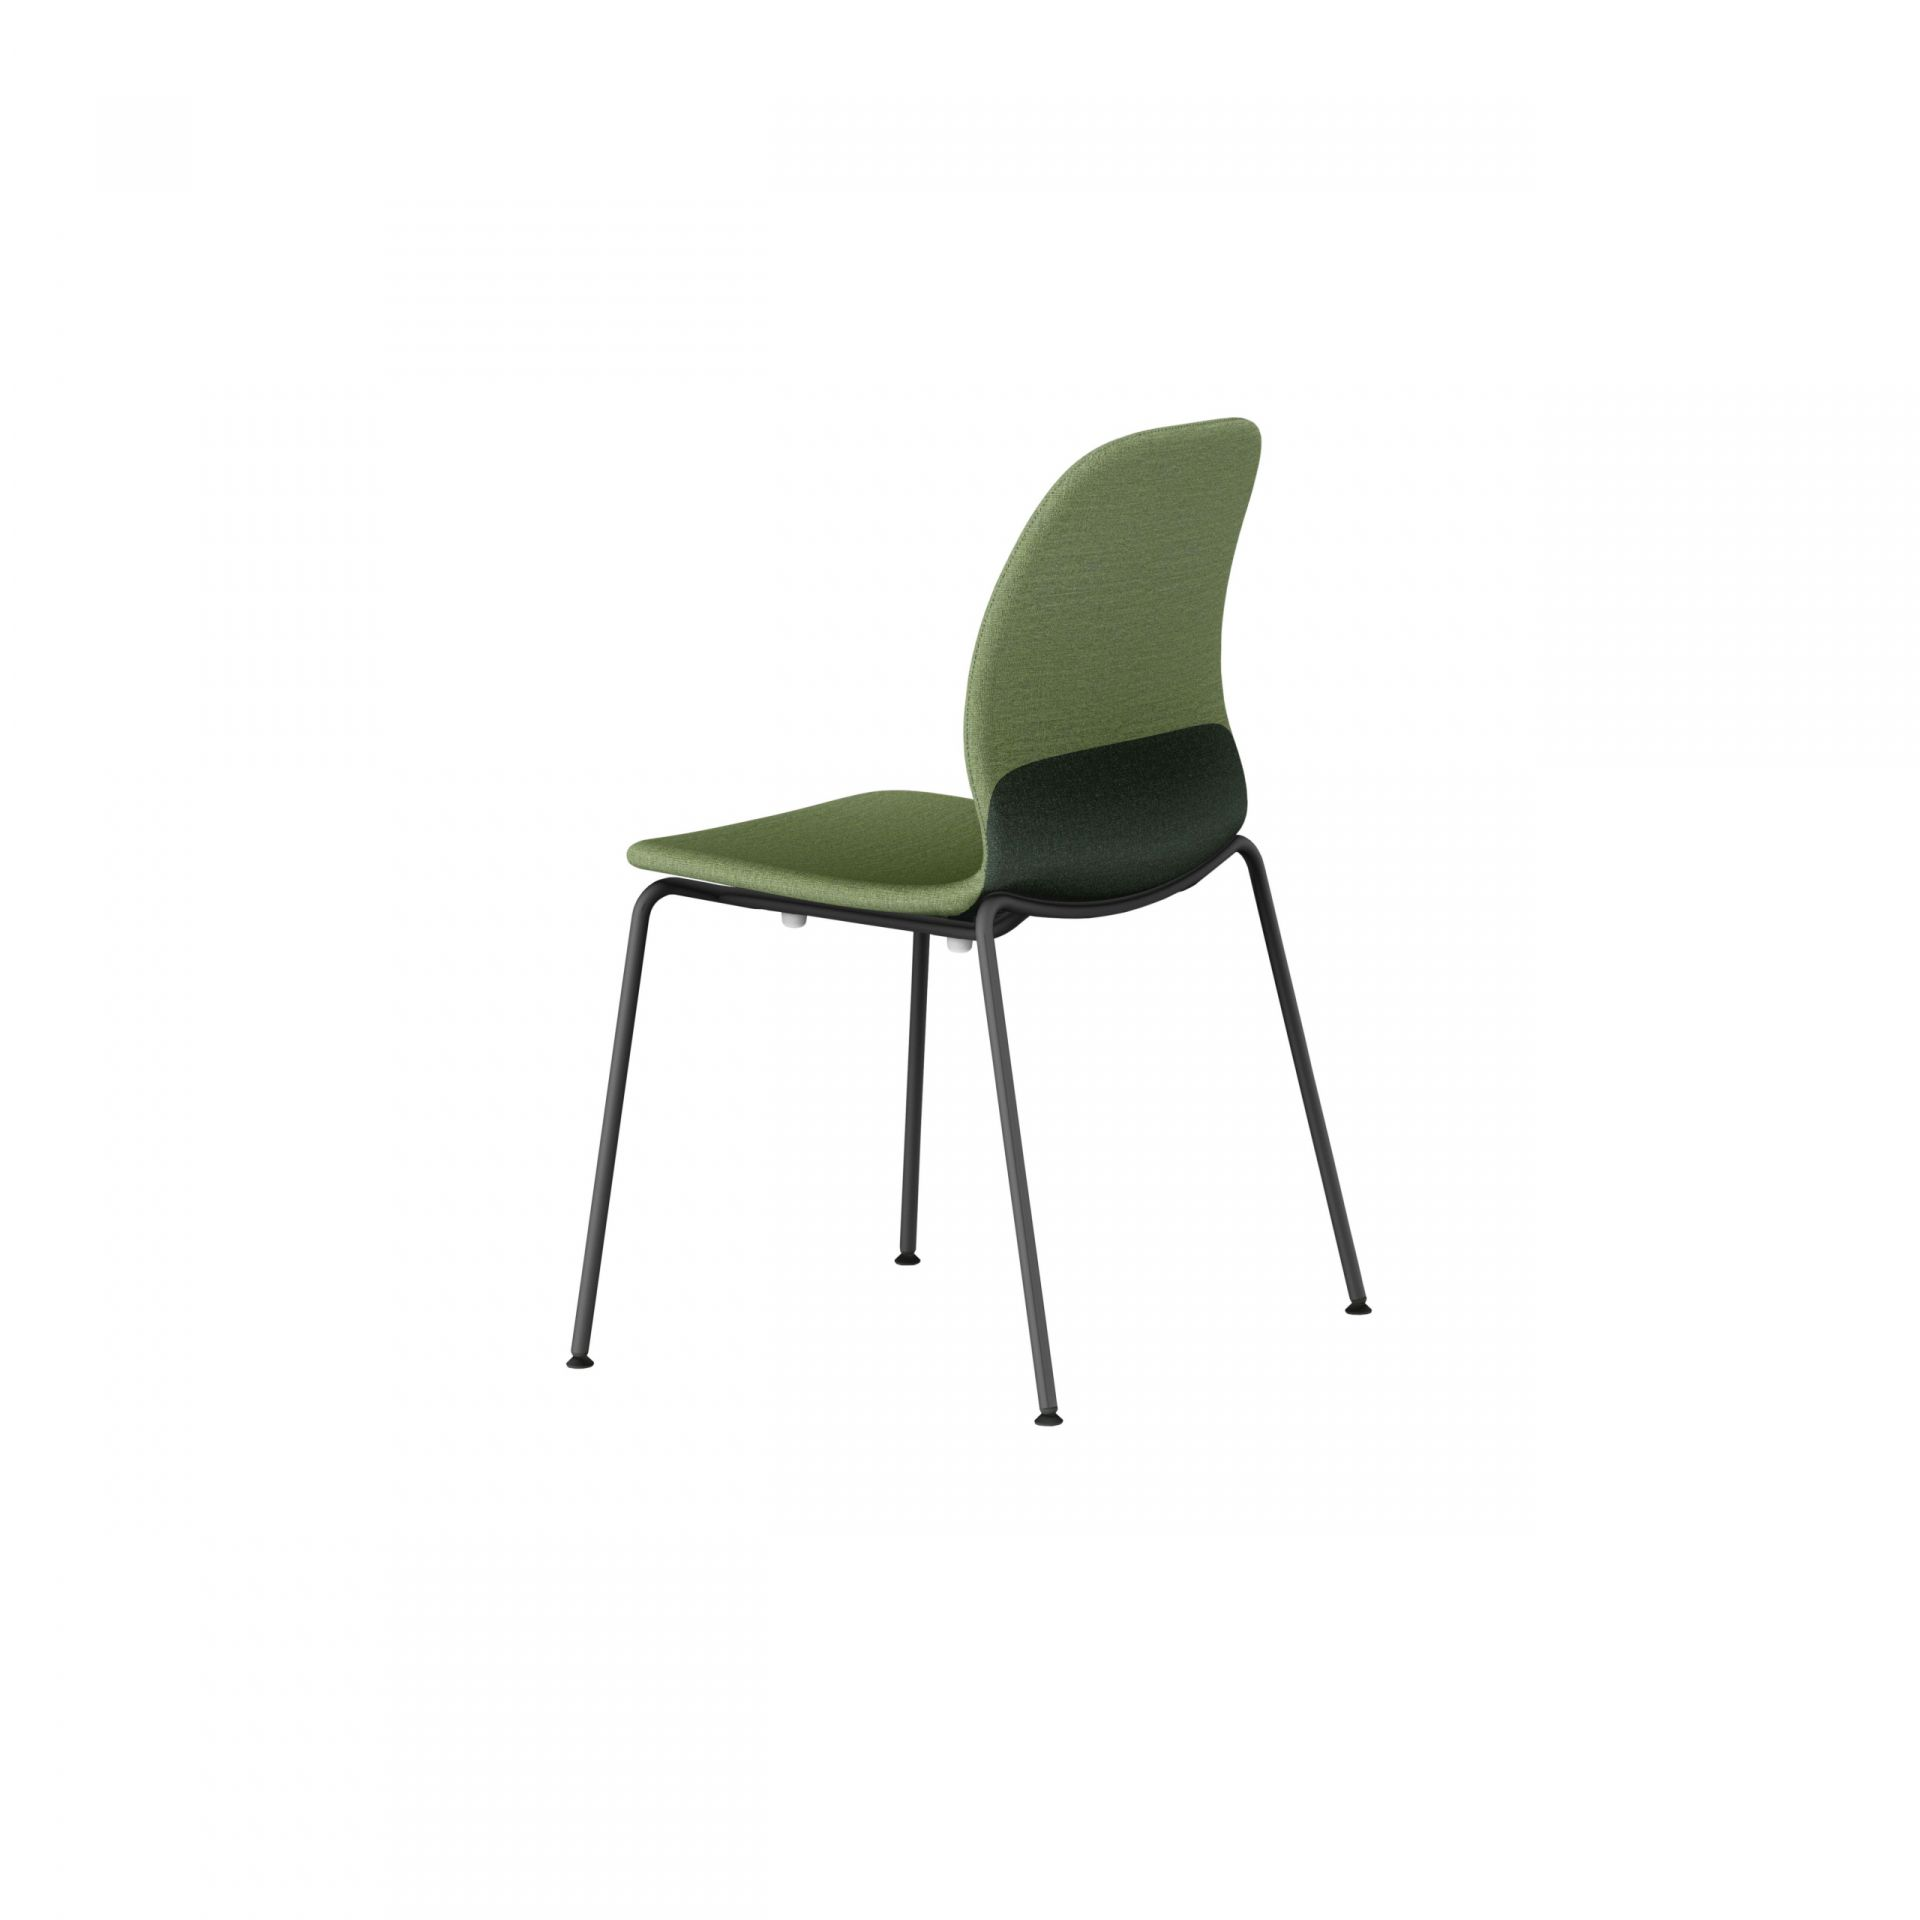 Archie Chair with metal legs product image 4